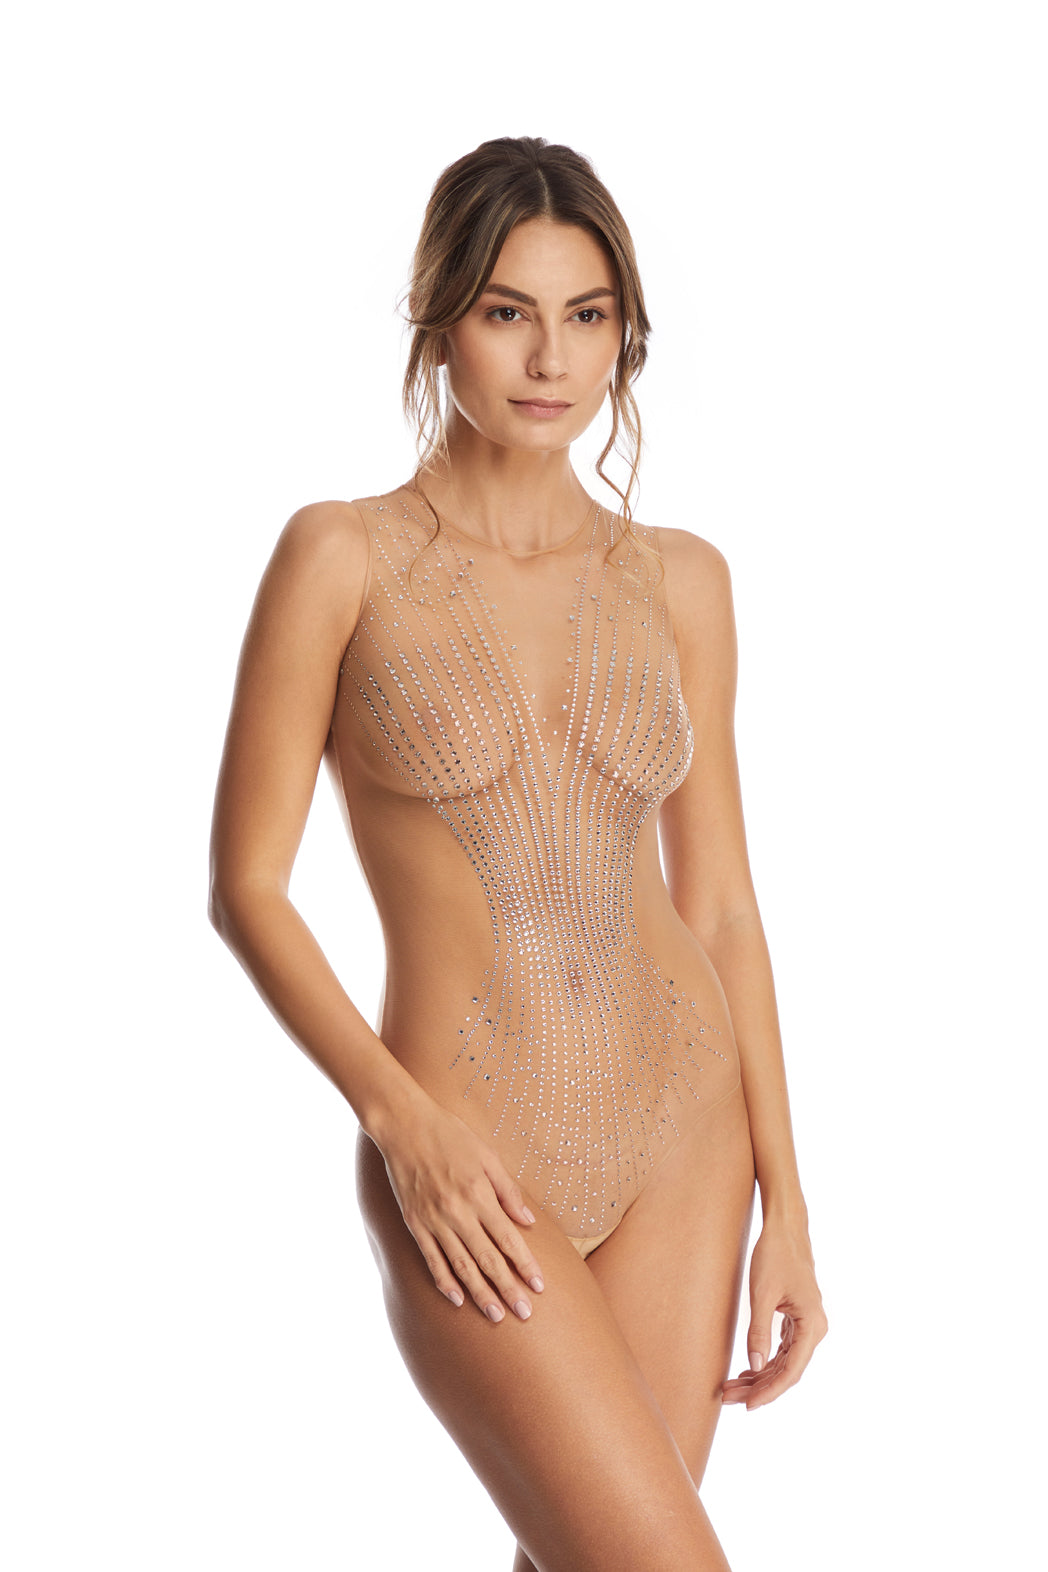 Nuit Interdit Bodysuit with Swarovski Elements in Nude